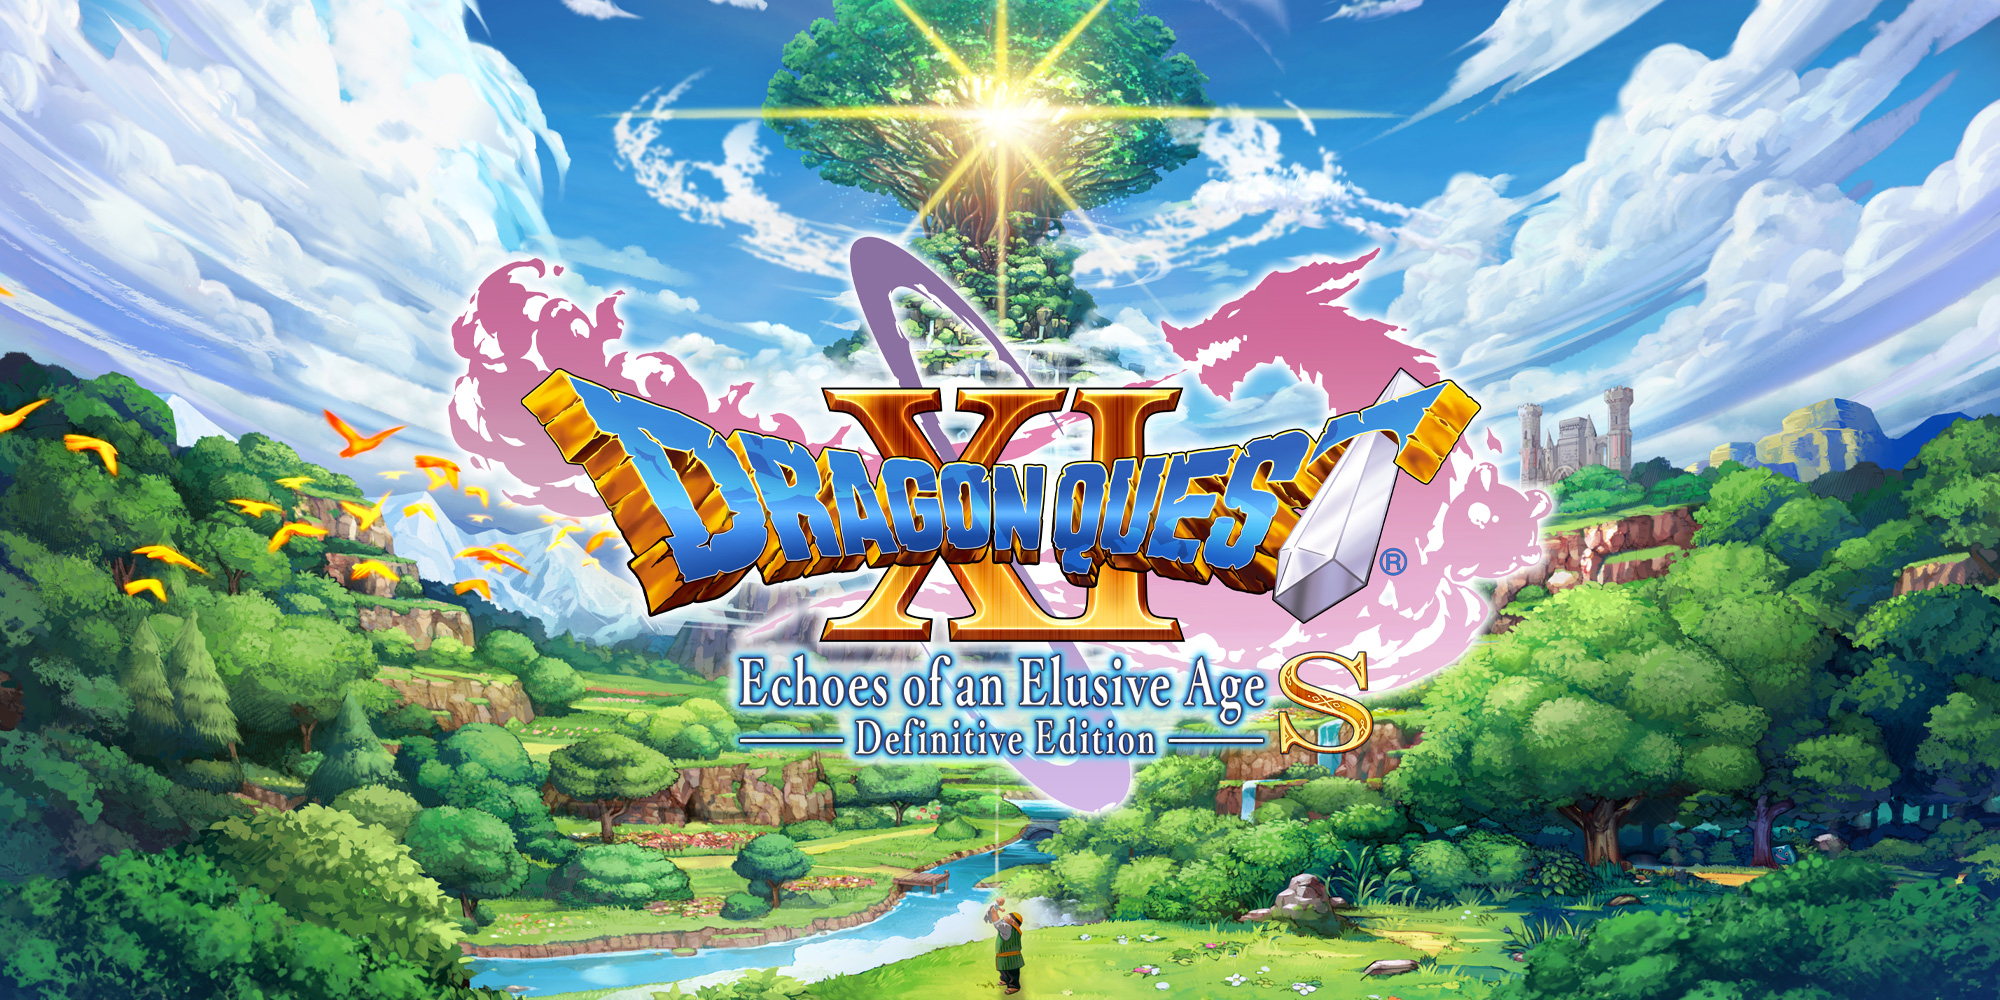 Descobre mais sobre DRAGON QUEST XI S: Echoes of an Elusive Age – Definitive Edition neste vídeo da Nintendo Treehouse: Live!